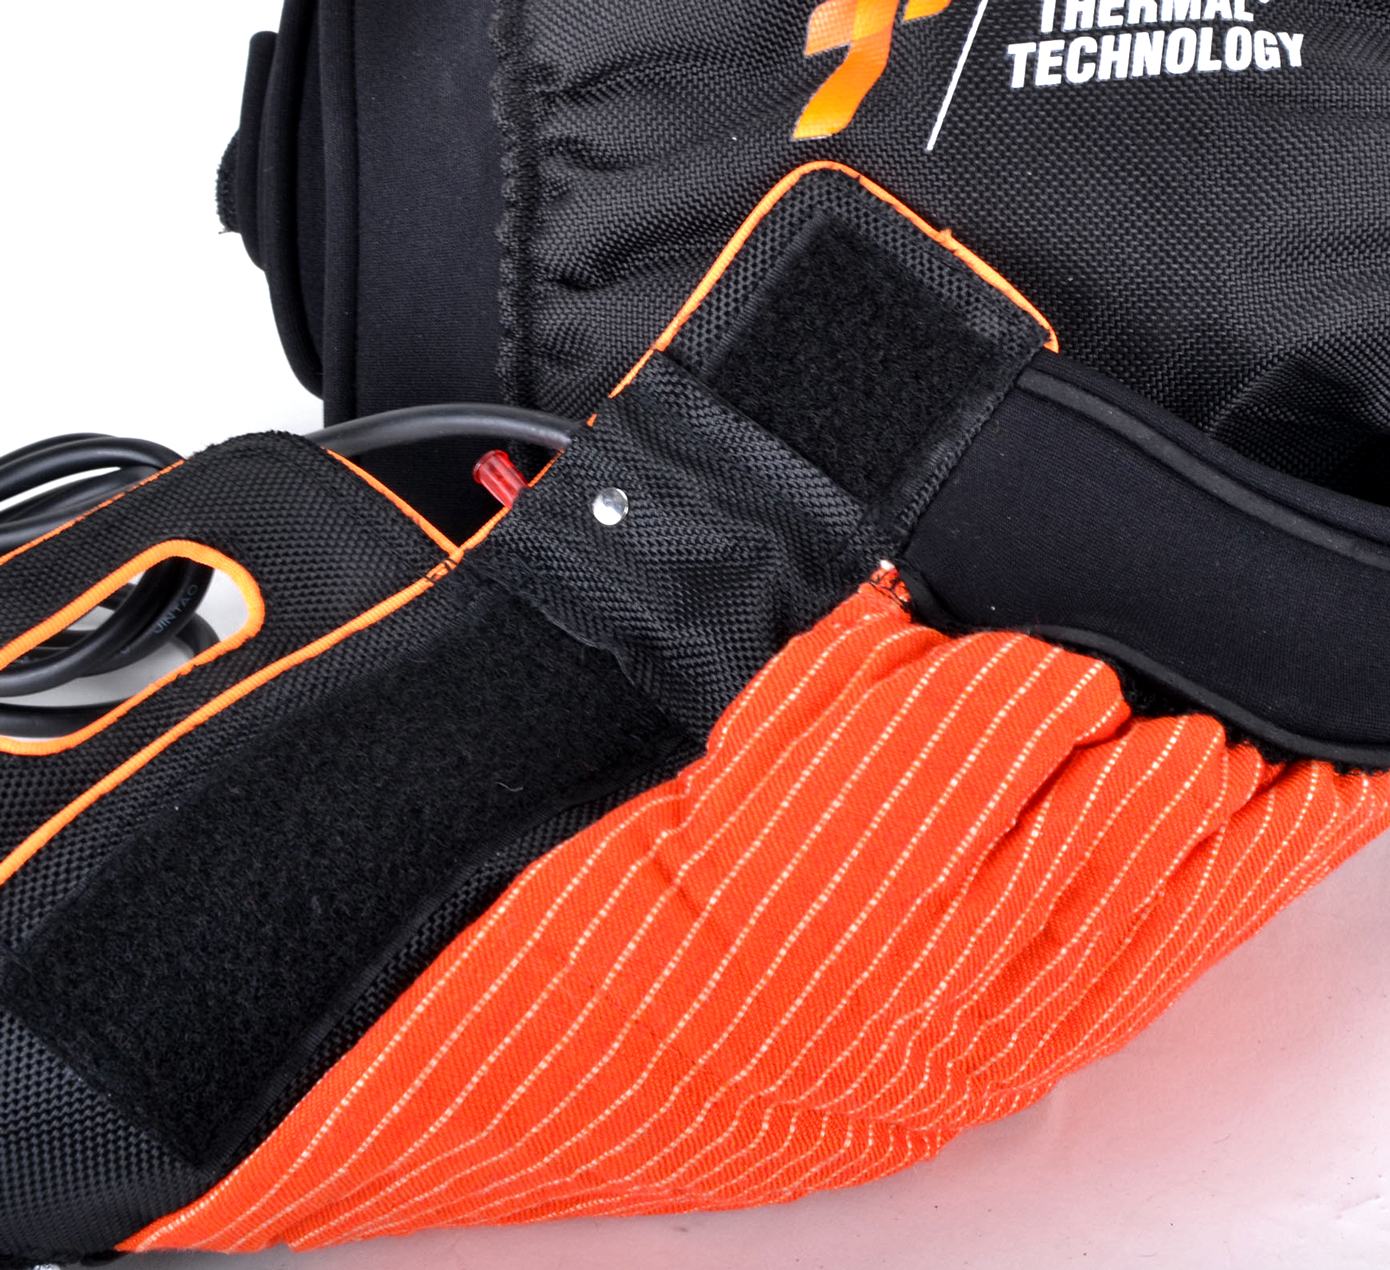 Thermal Technology Tyre Warmers TE_PRO_XL_N